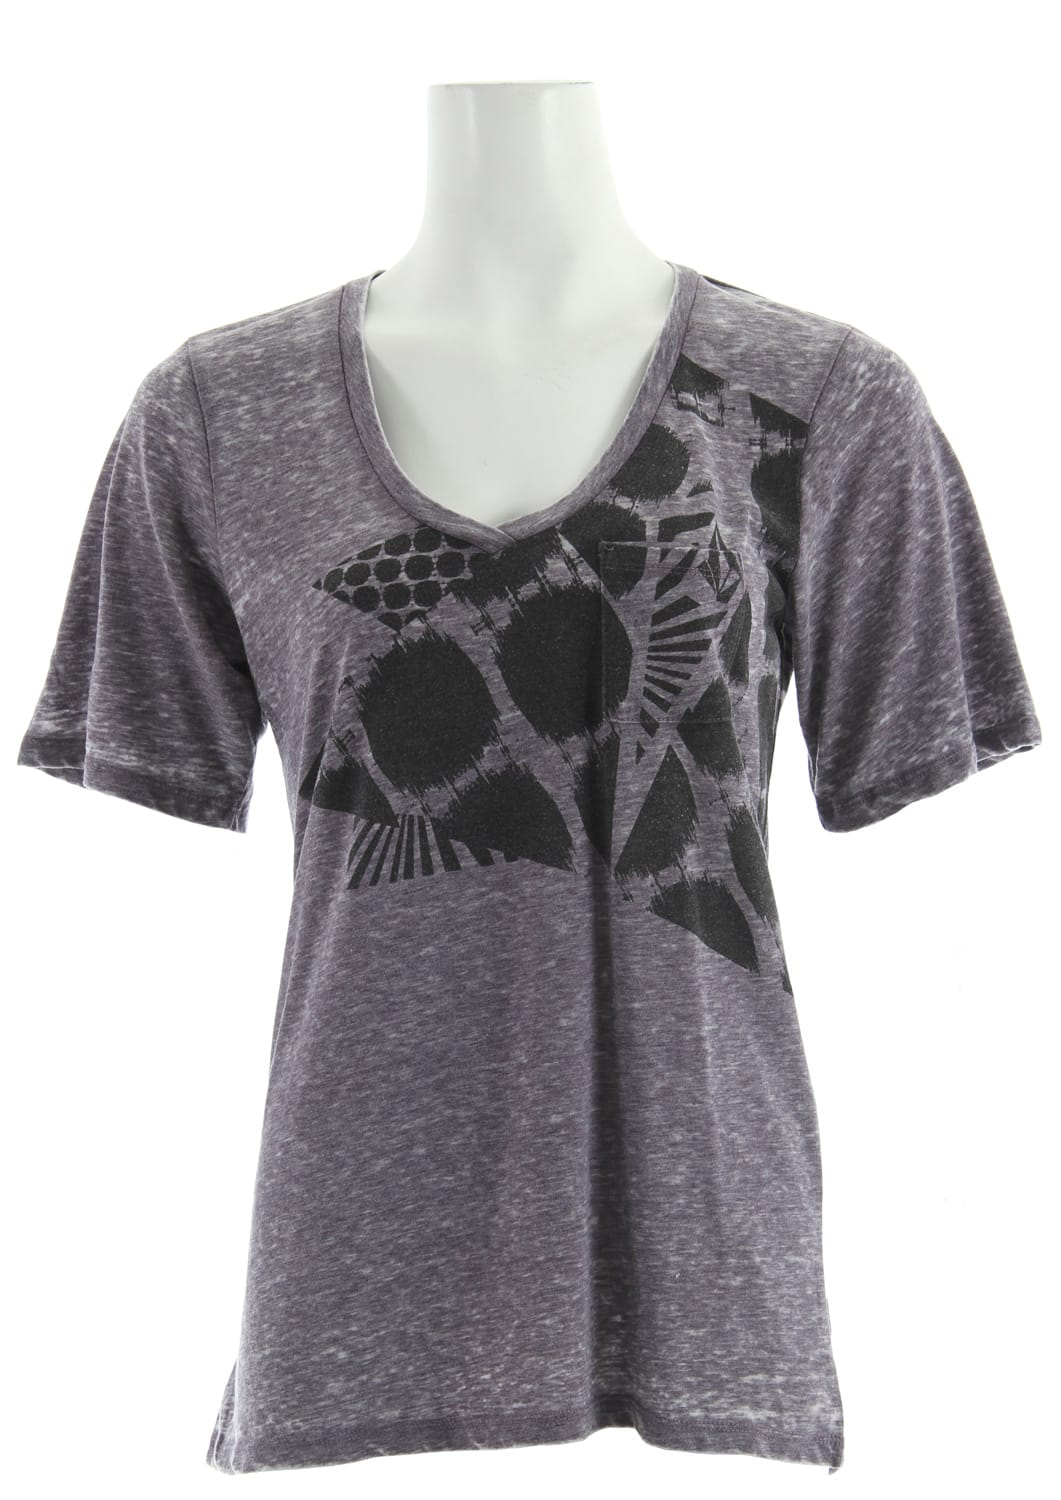 Shop for Volcom Moddayze Pocket T-Shirt Gothic Grape Heather - Women's